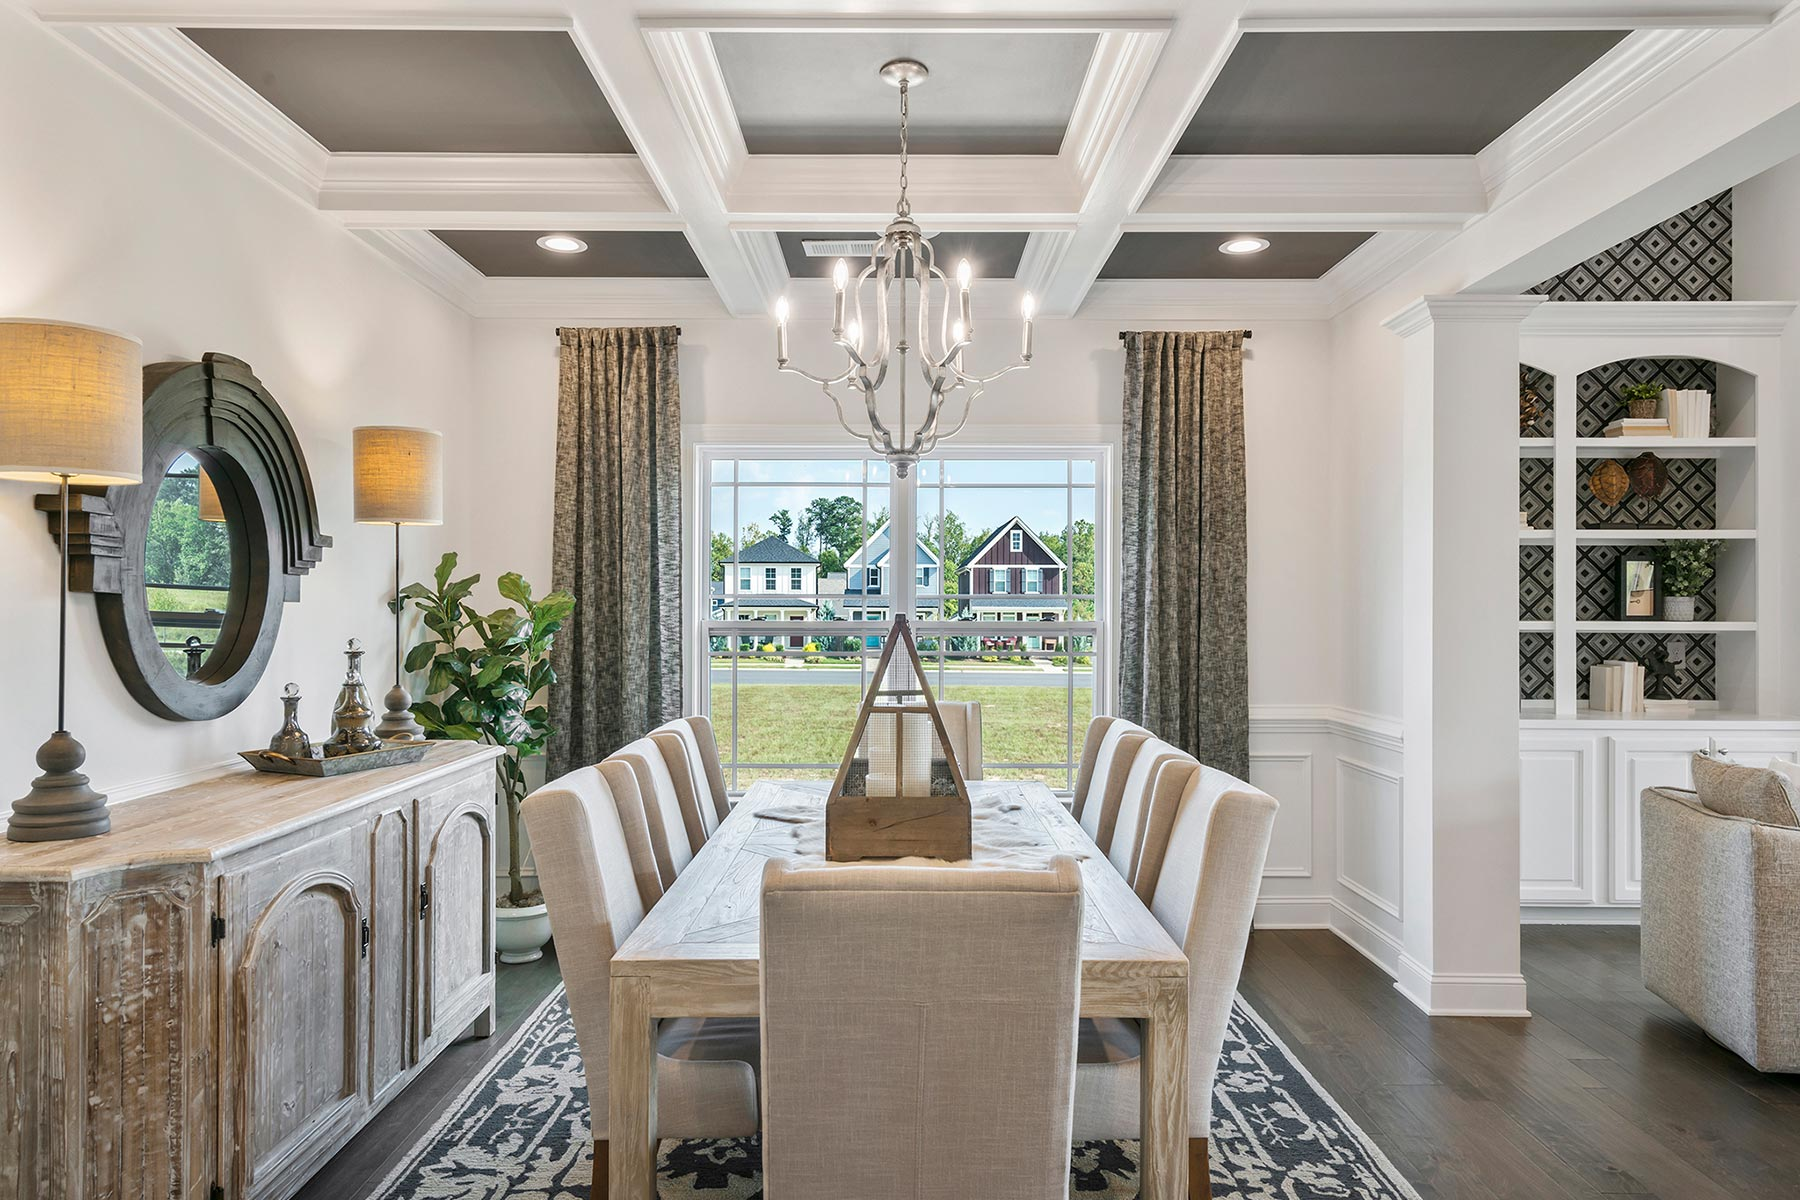 Camden Plan Dining at Ballentine Place in Holly Springs North Carolina by Mattamy Homes